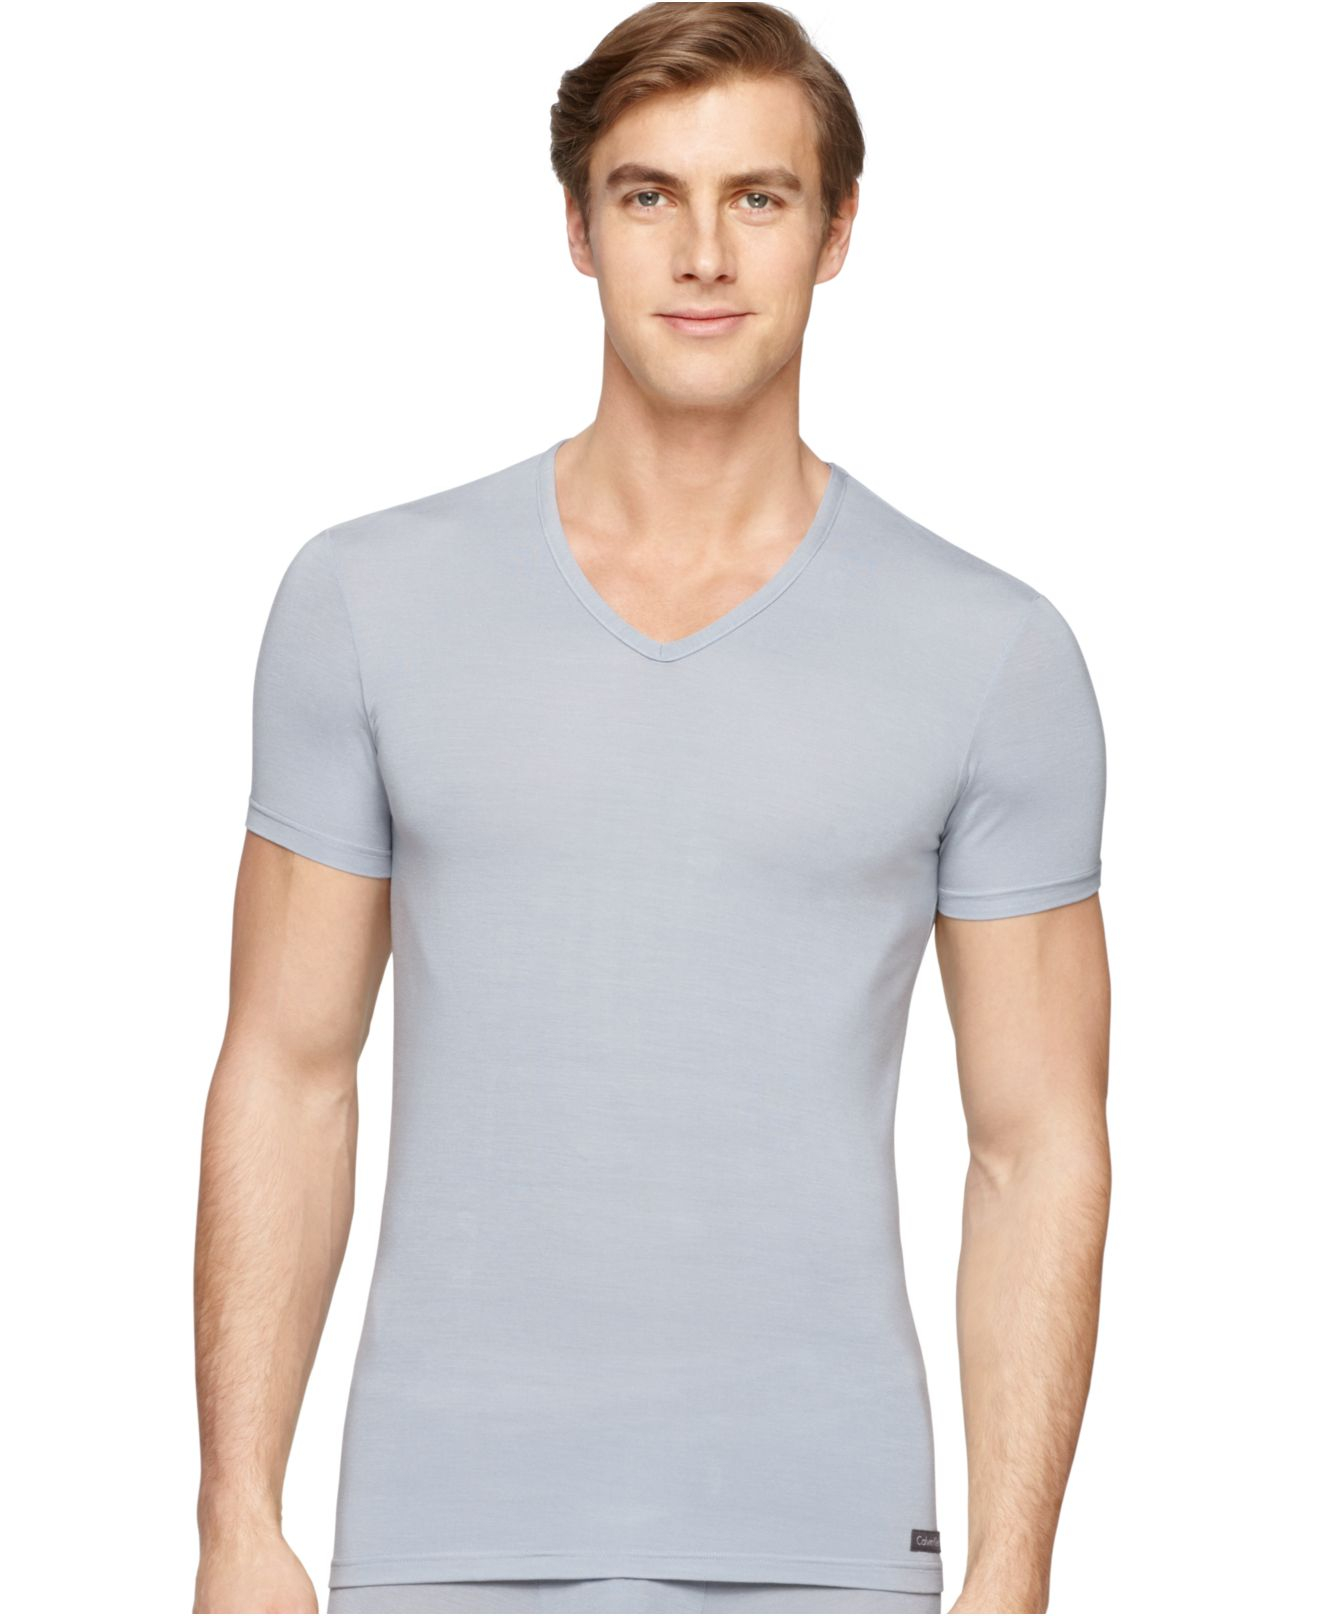 Lyst calvin klein micro modal v neck t shirt u5576 in for Modal t shirts mens